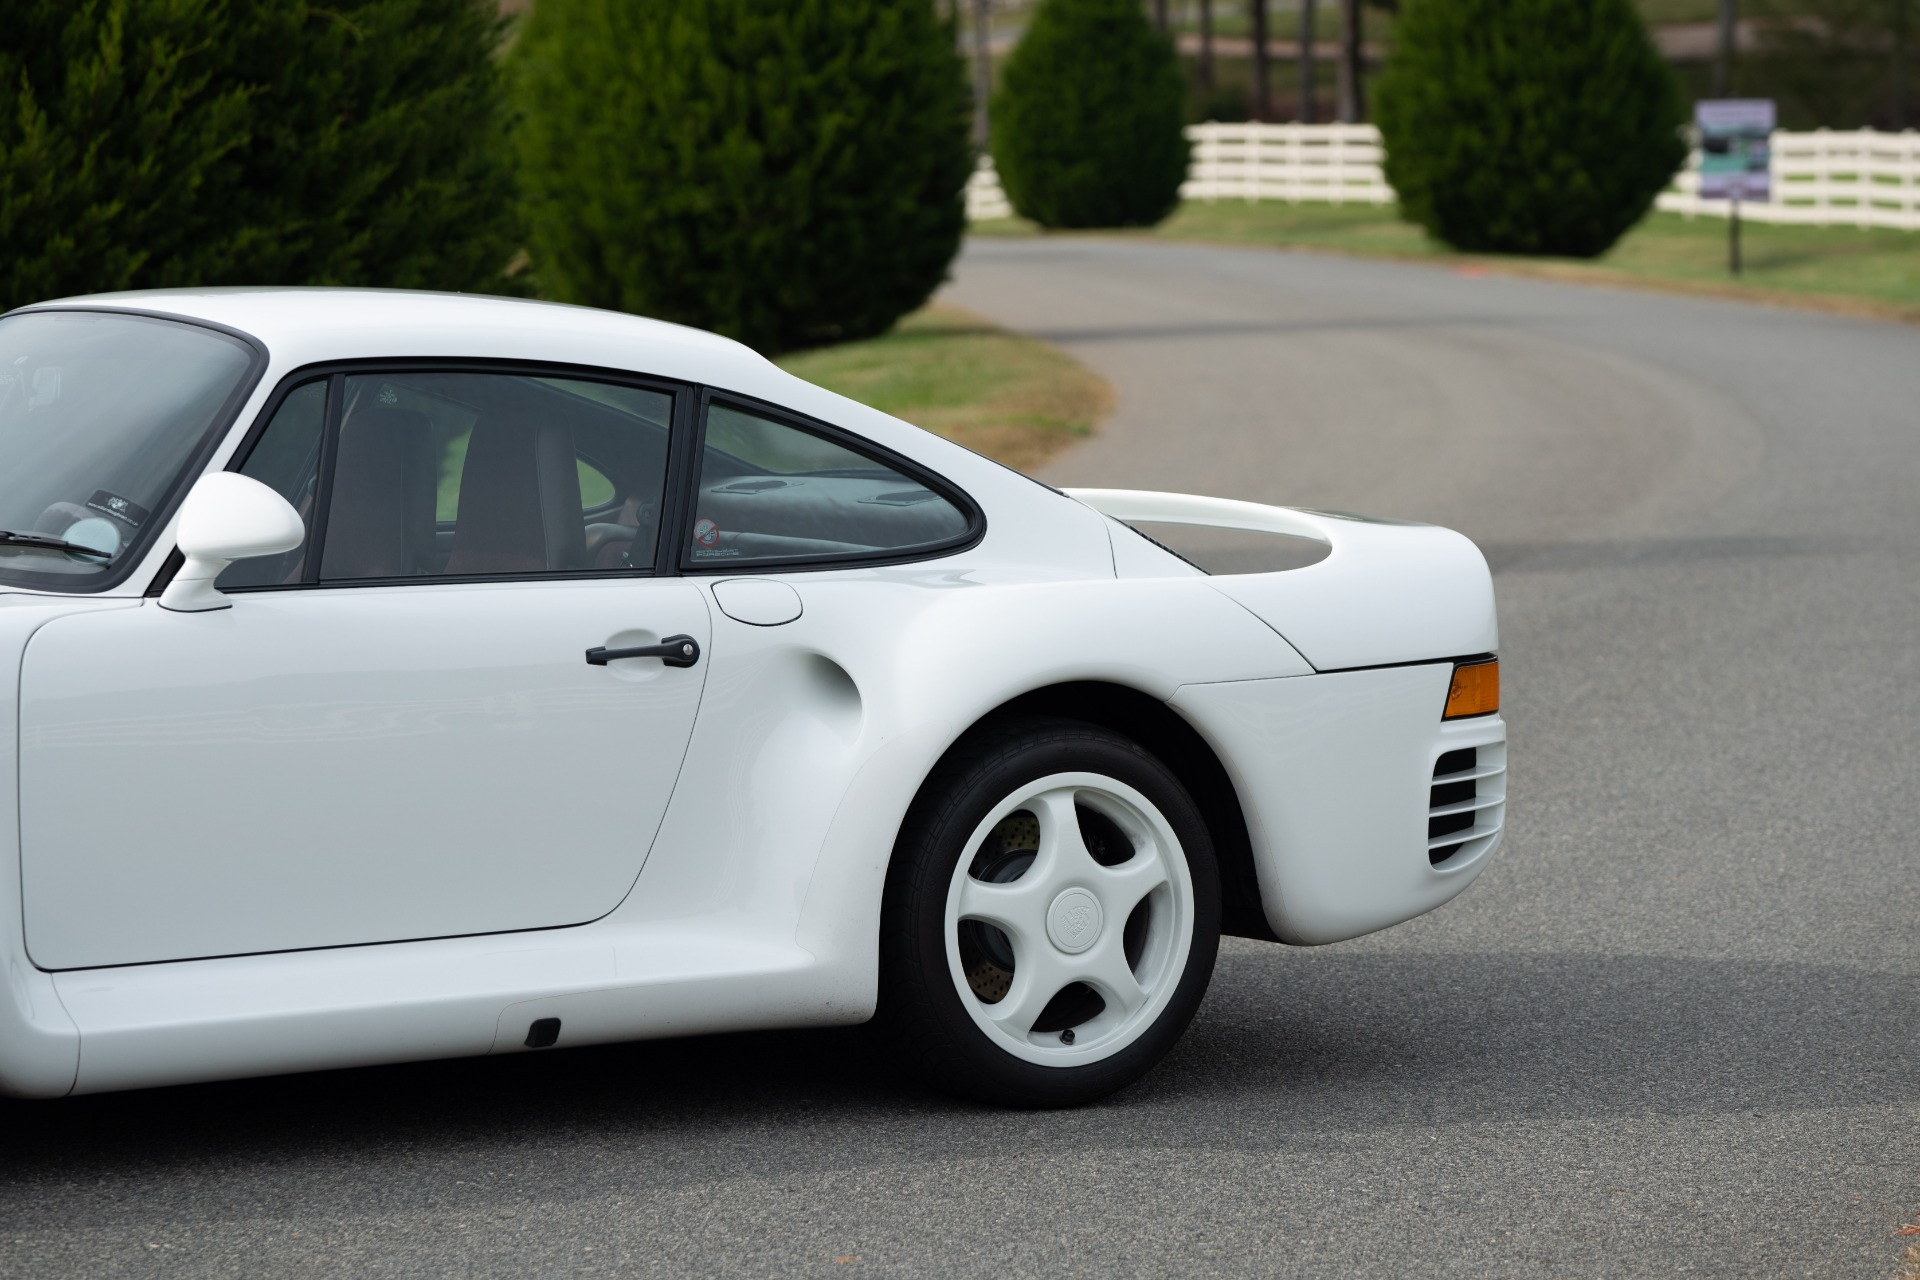 Used 1988 Porsche 959 KOMFORT COUPE / AWD / 6-SPEED MANUAL / ORIGINAL SUPERCAR for sale $1,425,000 at Formula Imports in Charlotte NC 28227 26